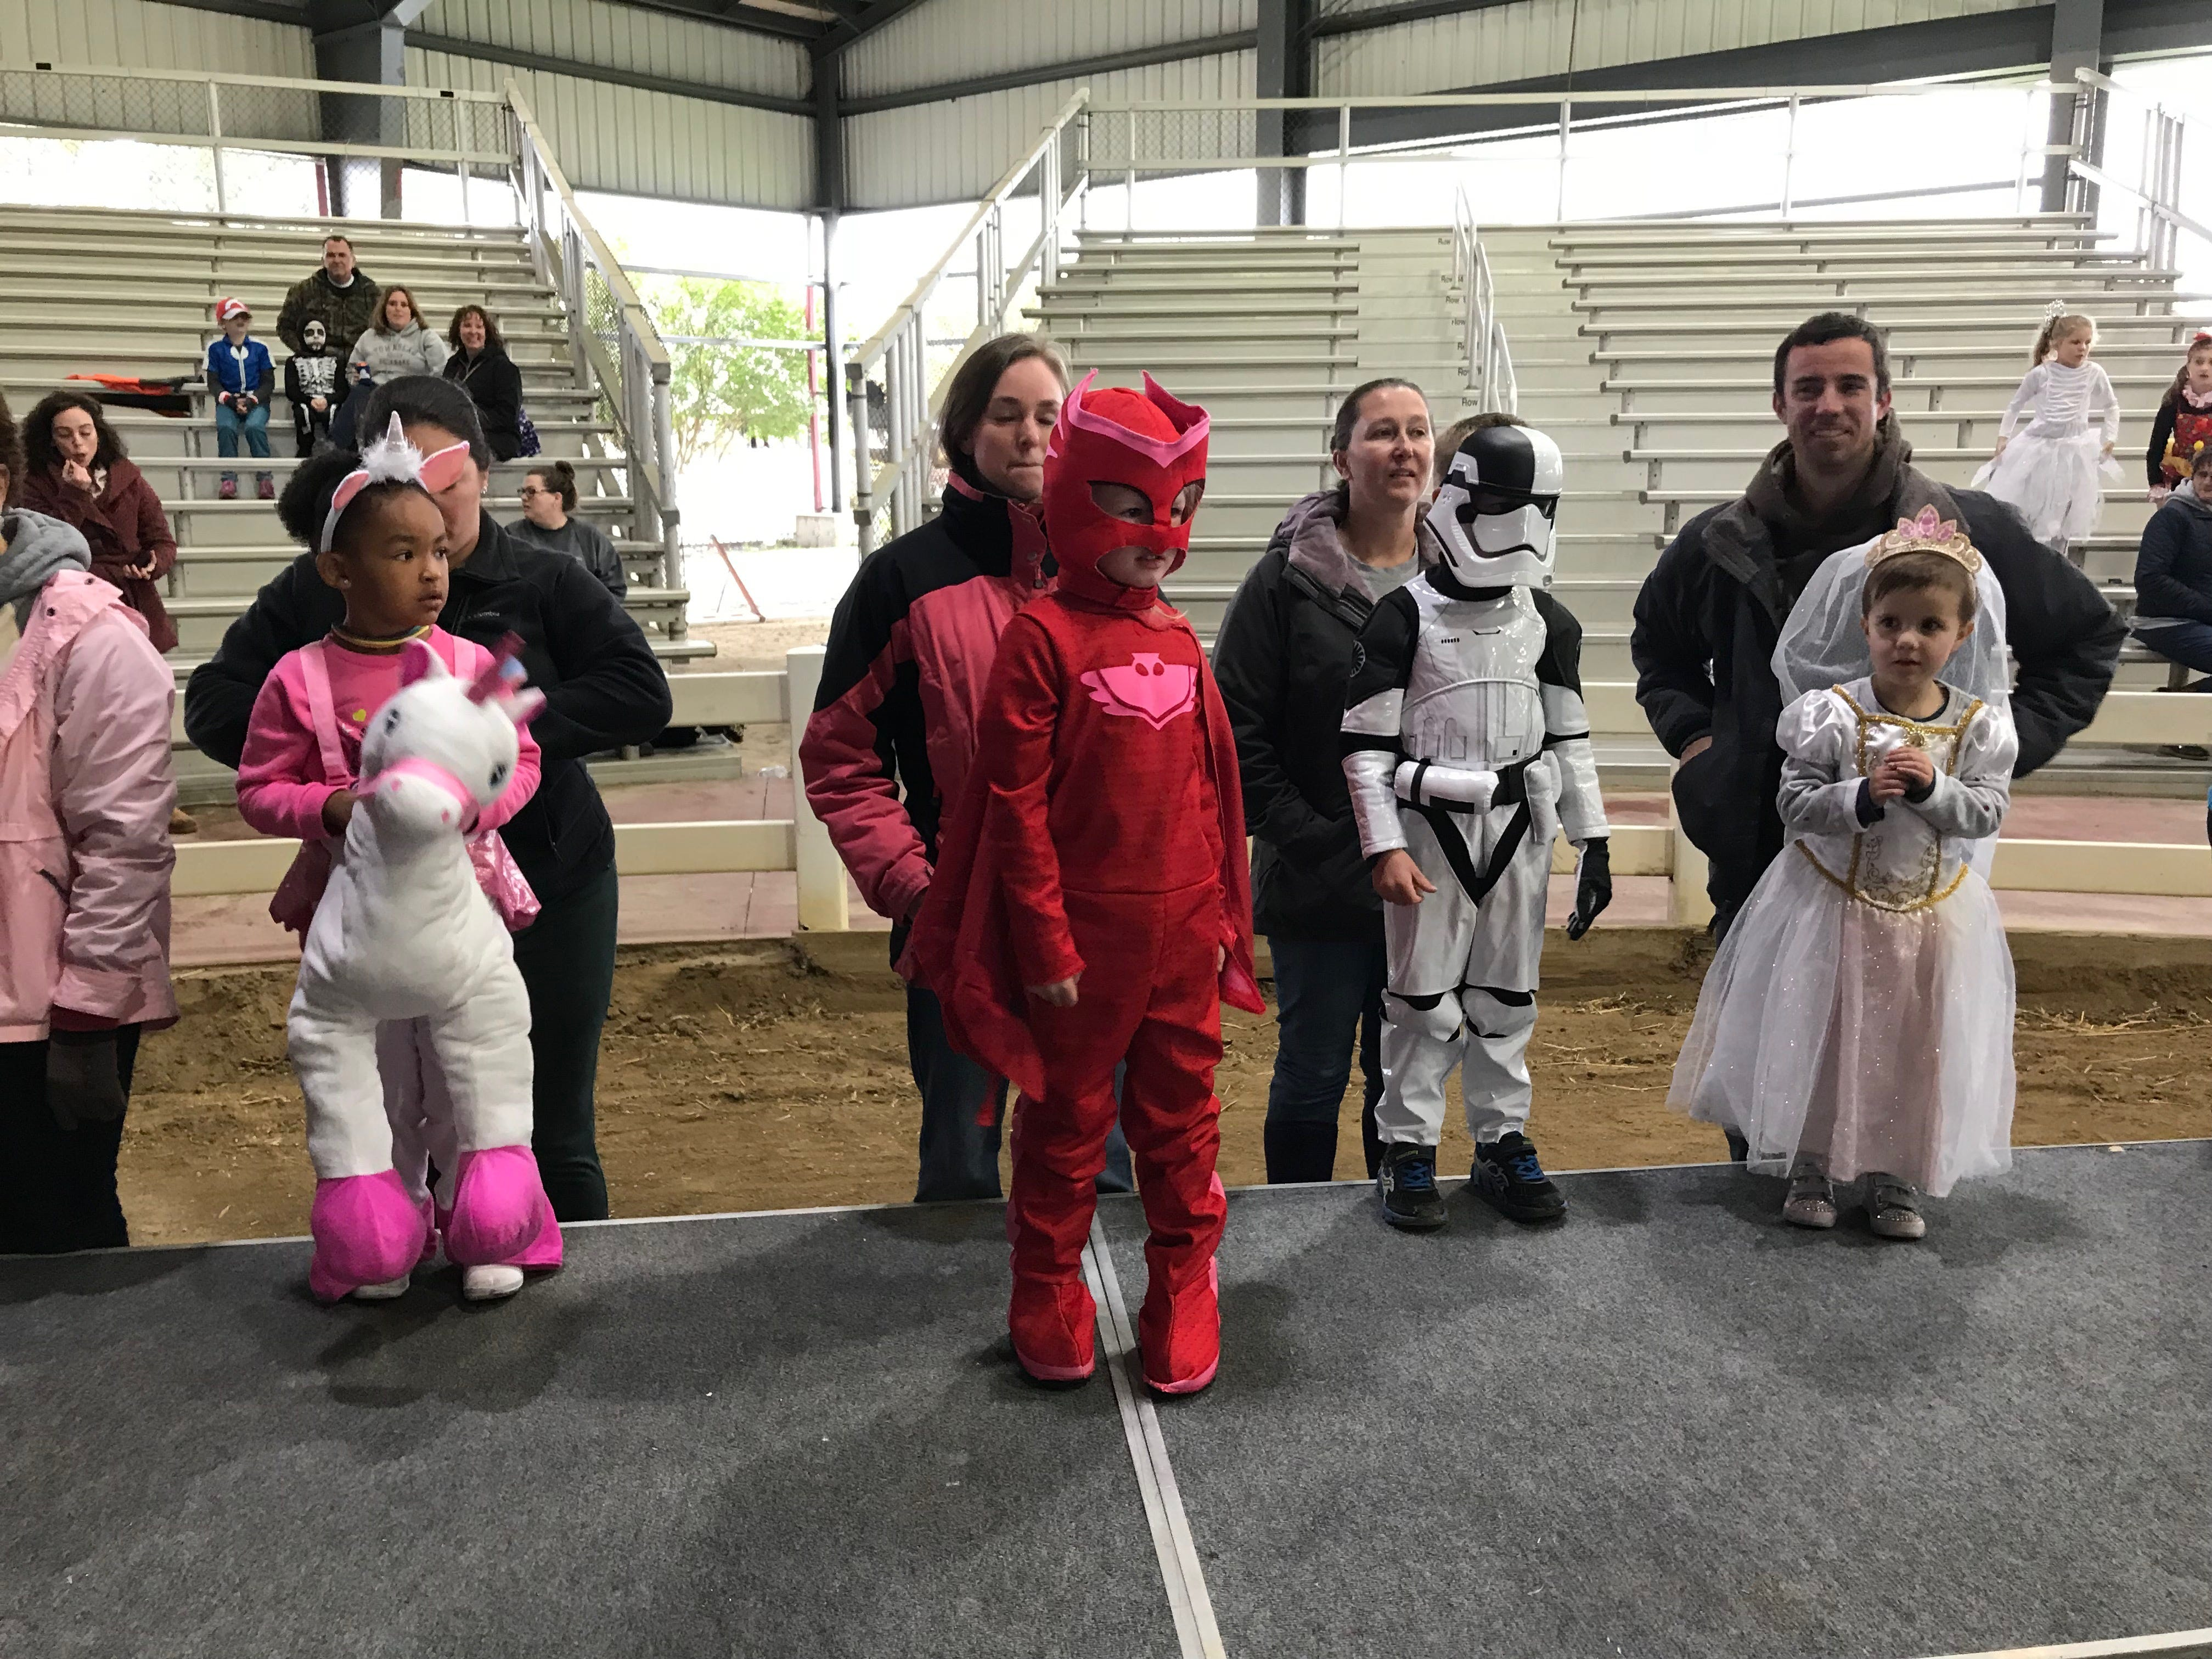 The younger kids start to line up for the costume contest at the first Great Delaware Pumpkin Carve Saturday.